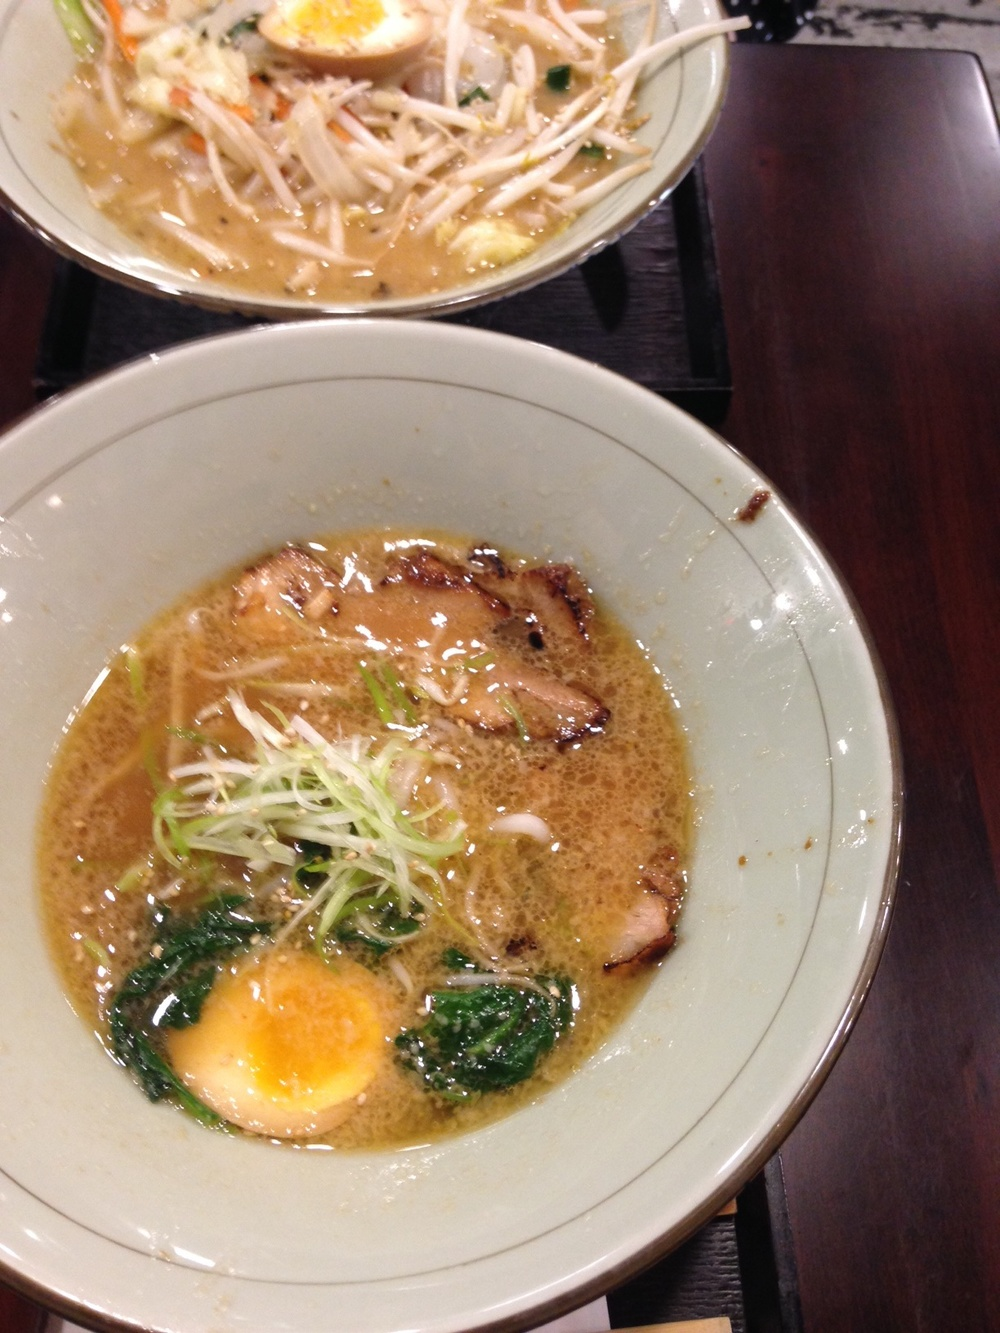 Exploring a new ramen joint with J unni. I devoured my ramen.